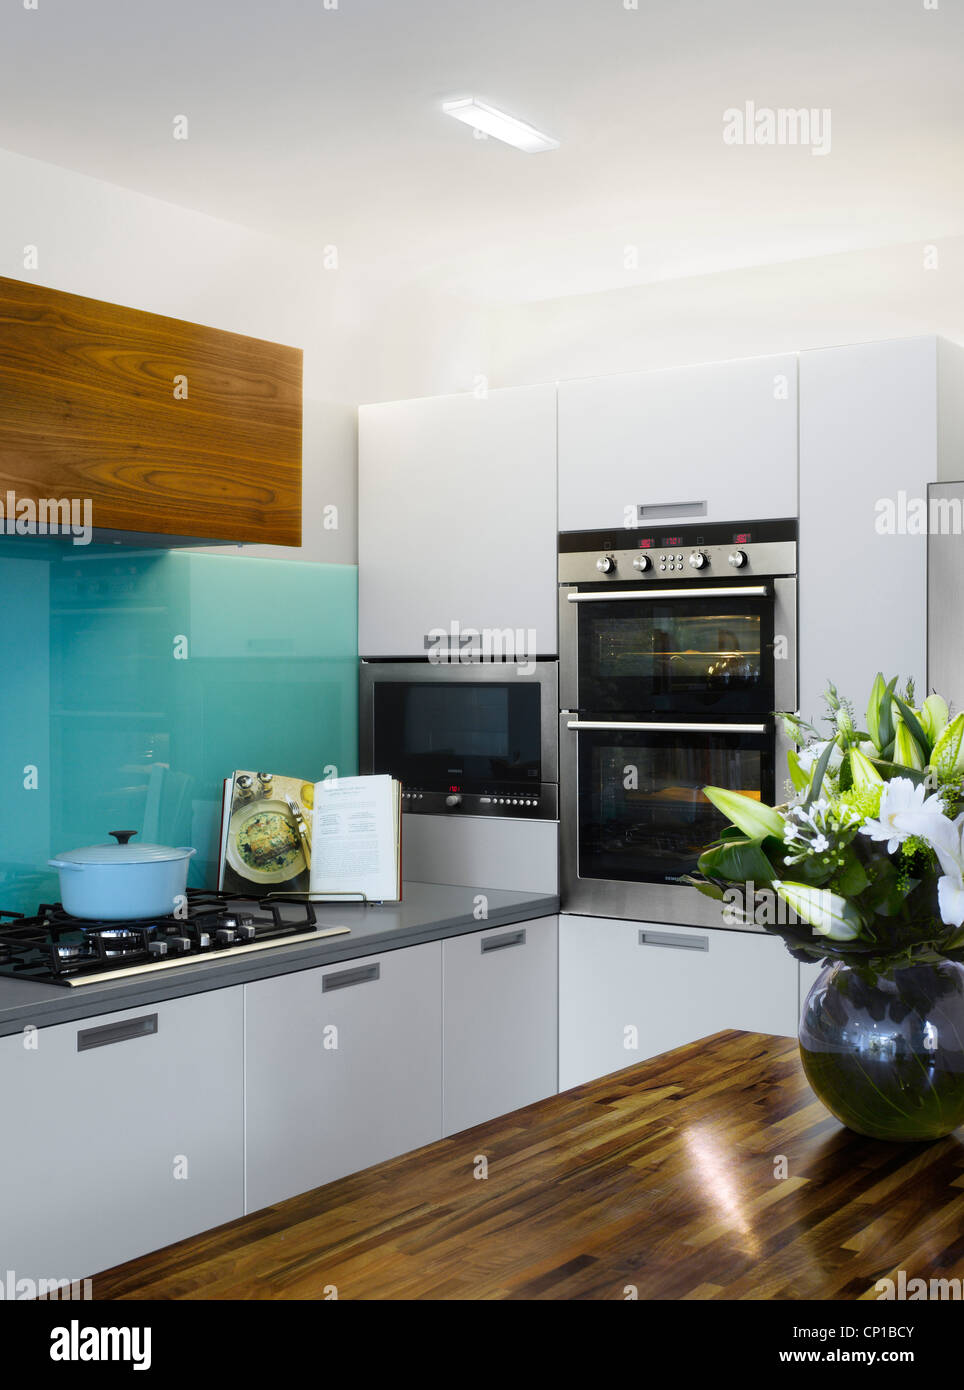 Cooking appliances in kitchen extension in semi detached house, Paul Archer Design, London, UK. - Stock Image